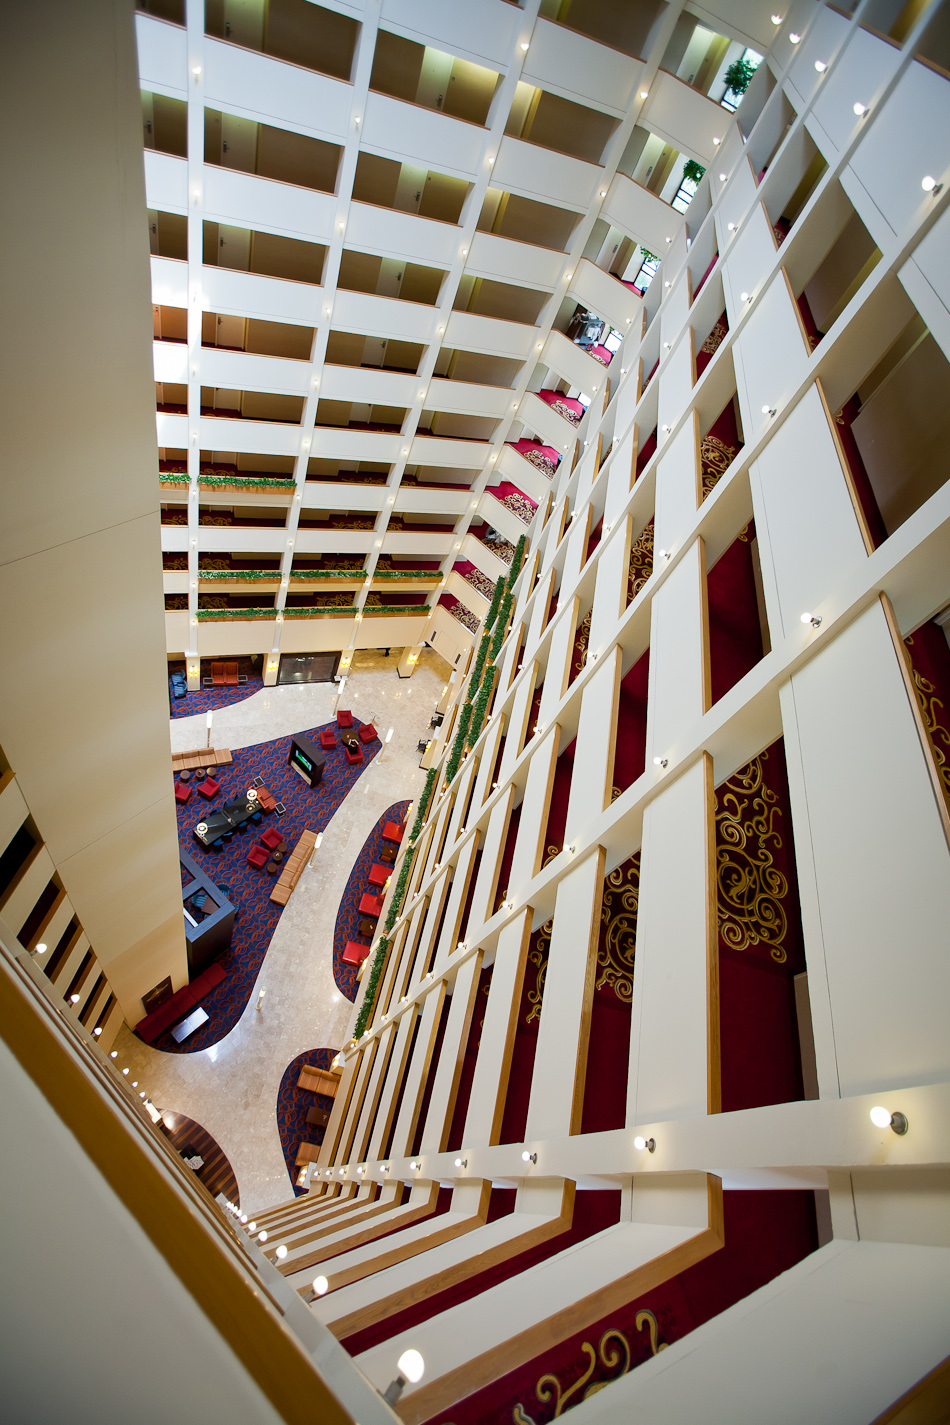 marriott_cc-45.jpg